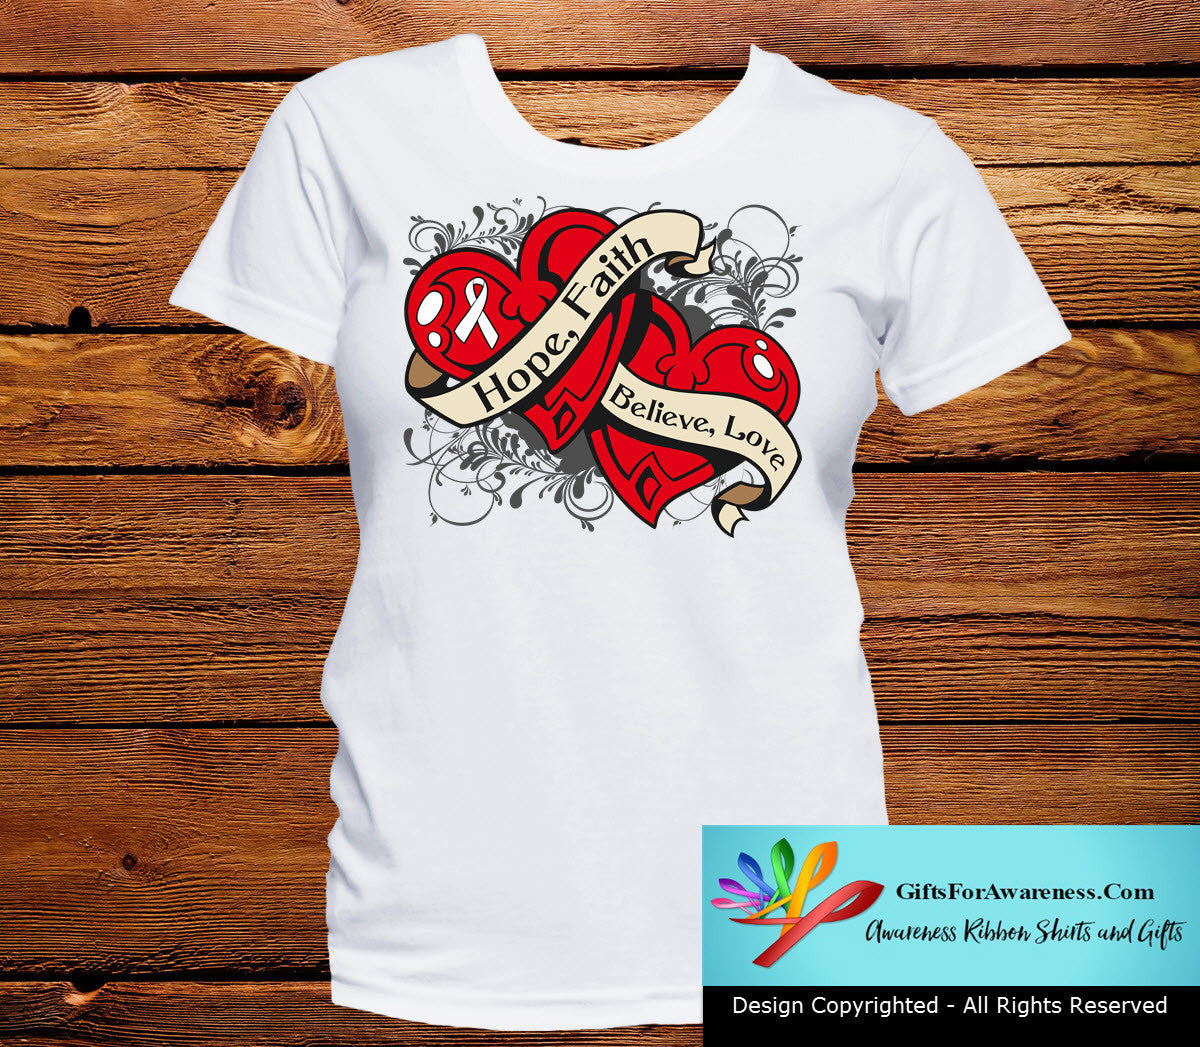 Mesothelioma Hope Believe Faith Love Shirts - GiftsForAwareness